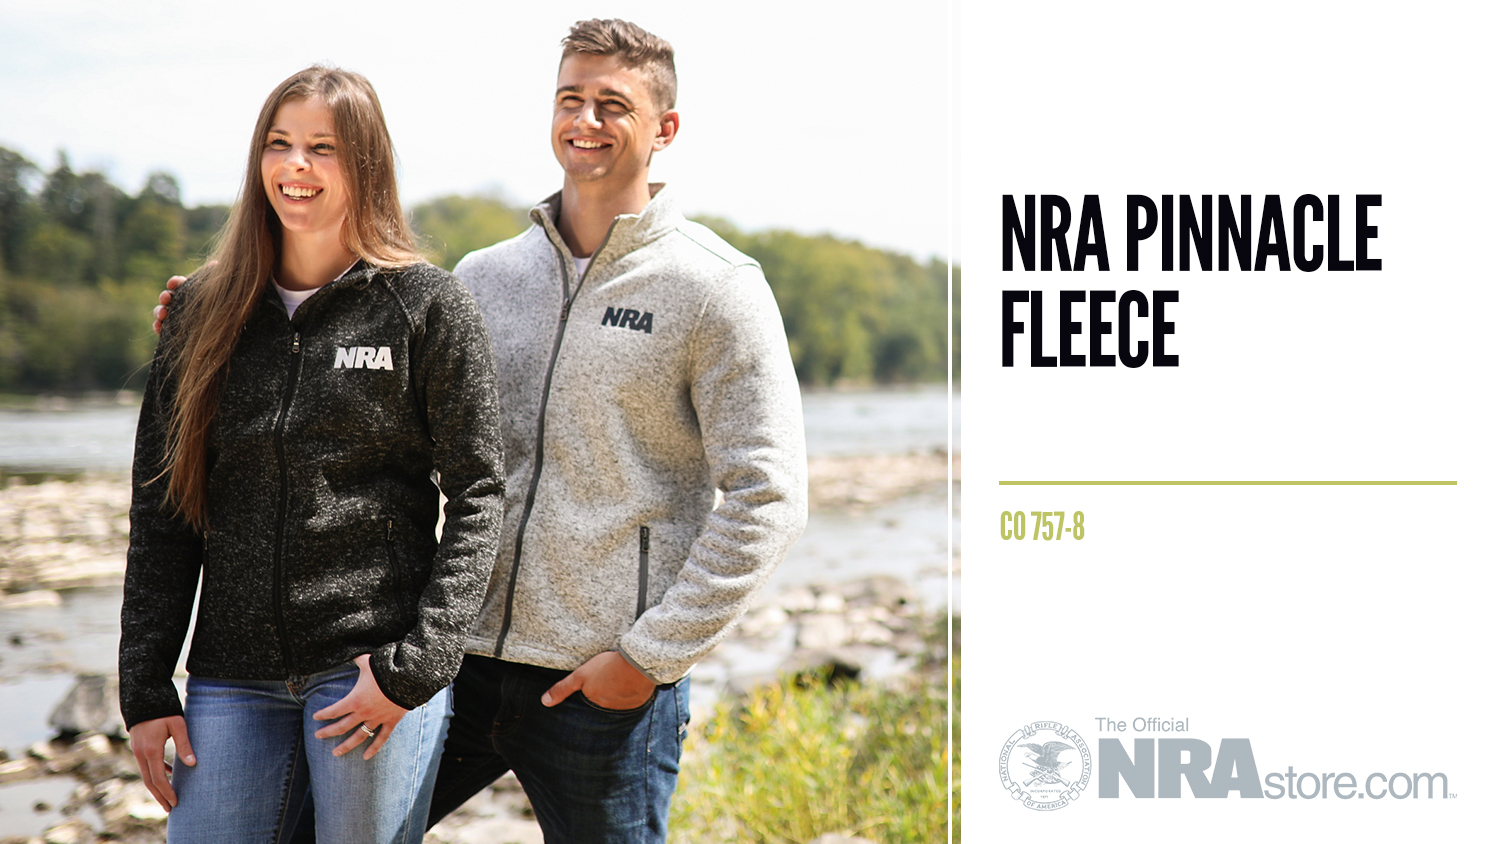 NRAstore Product Highlight: Pinnacle Fleece